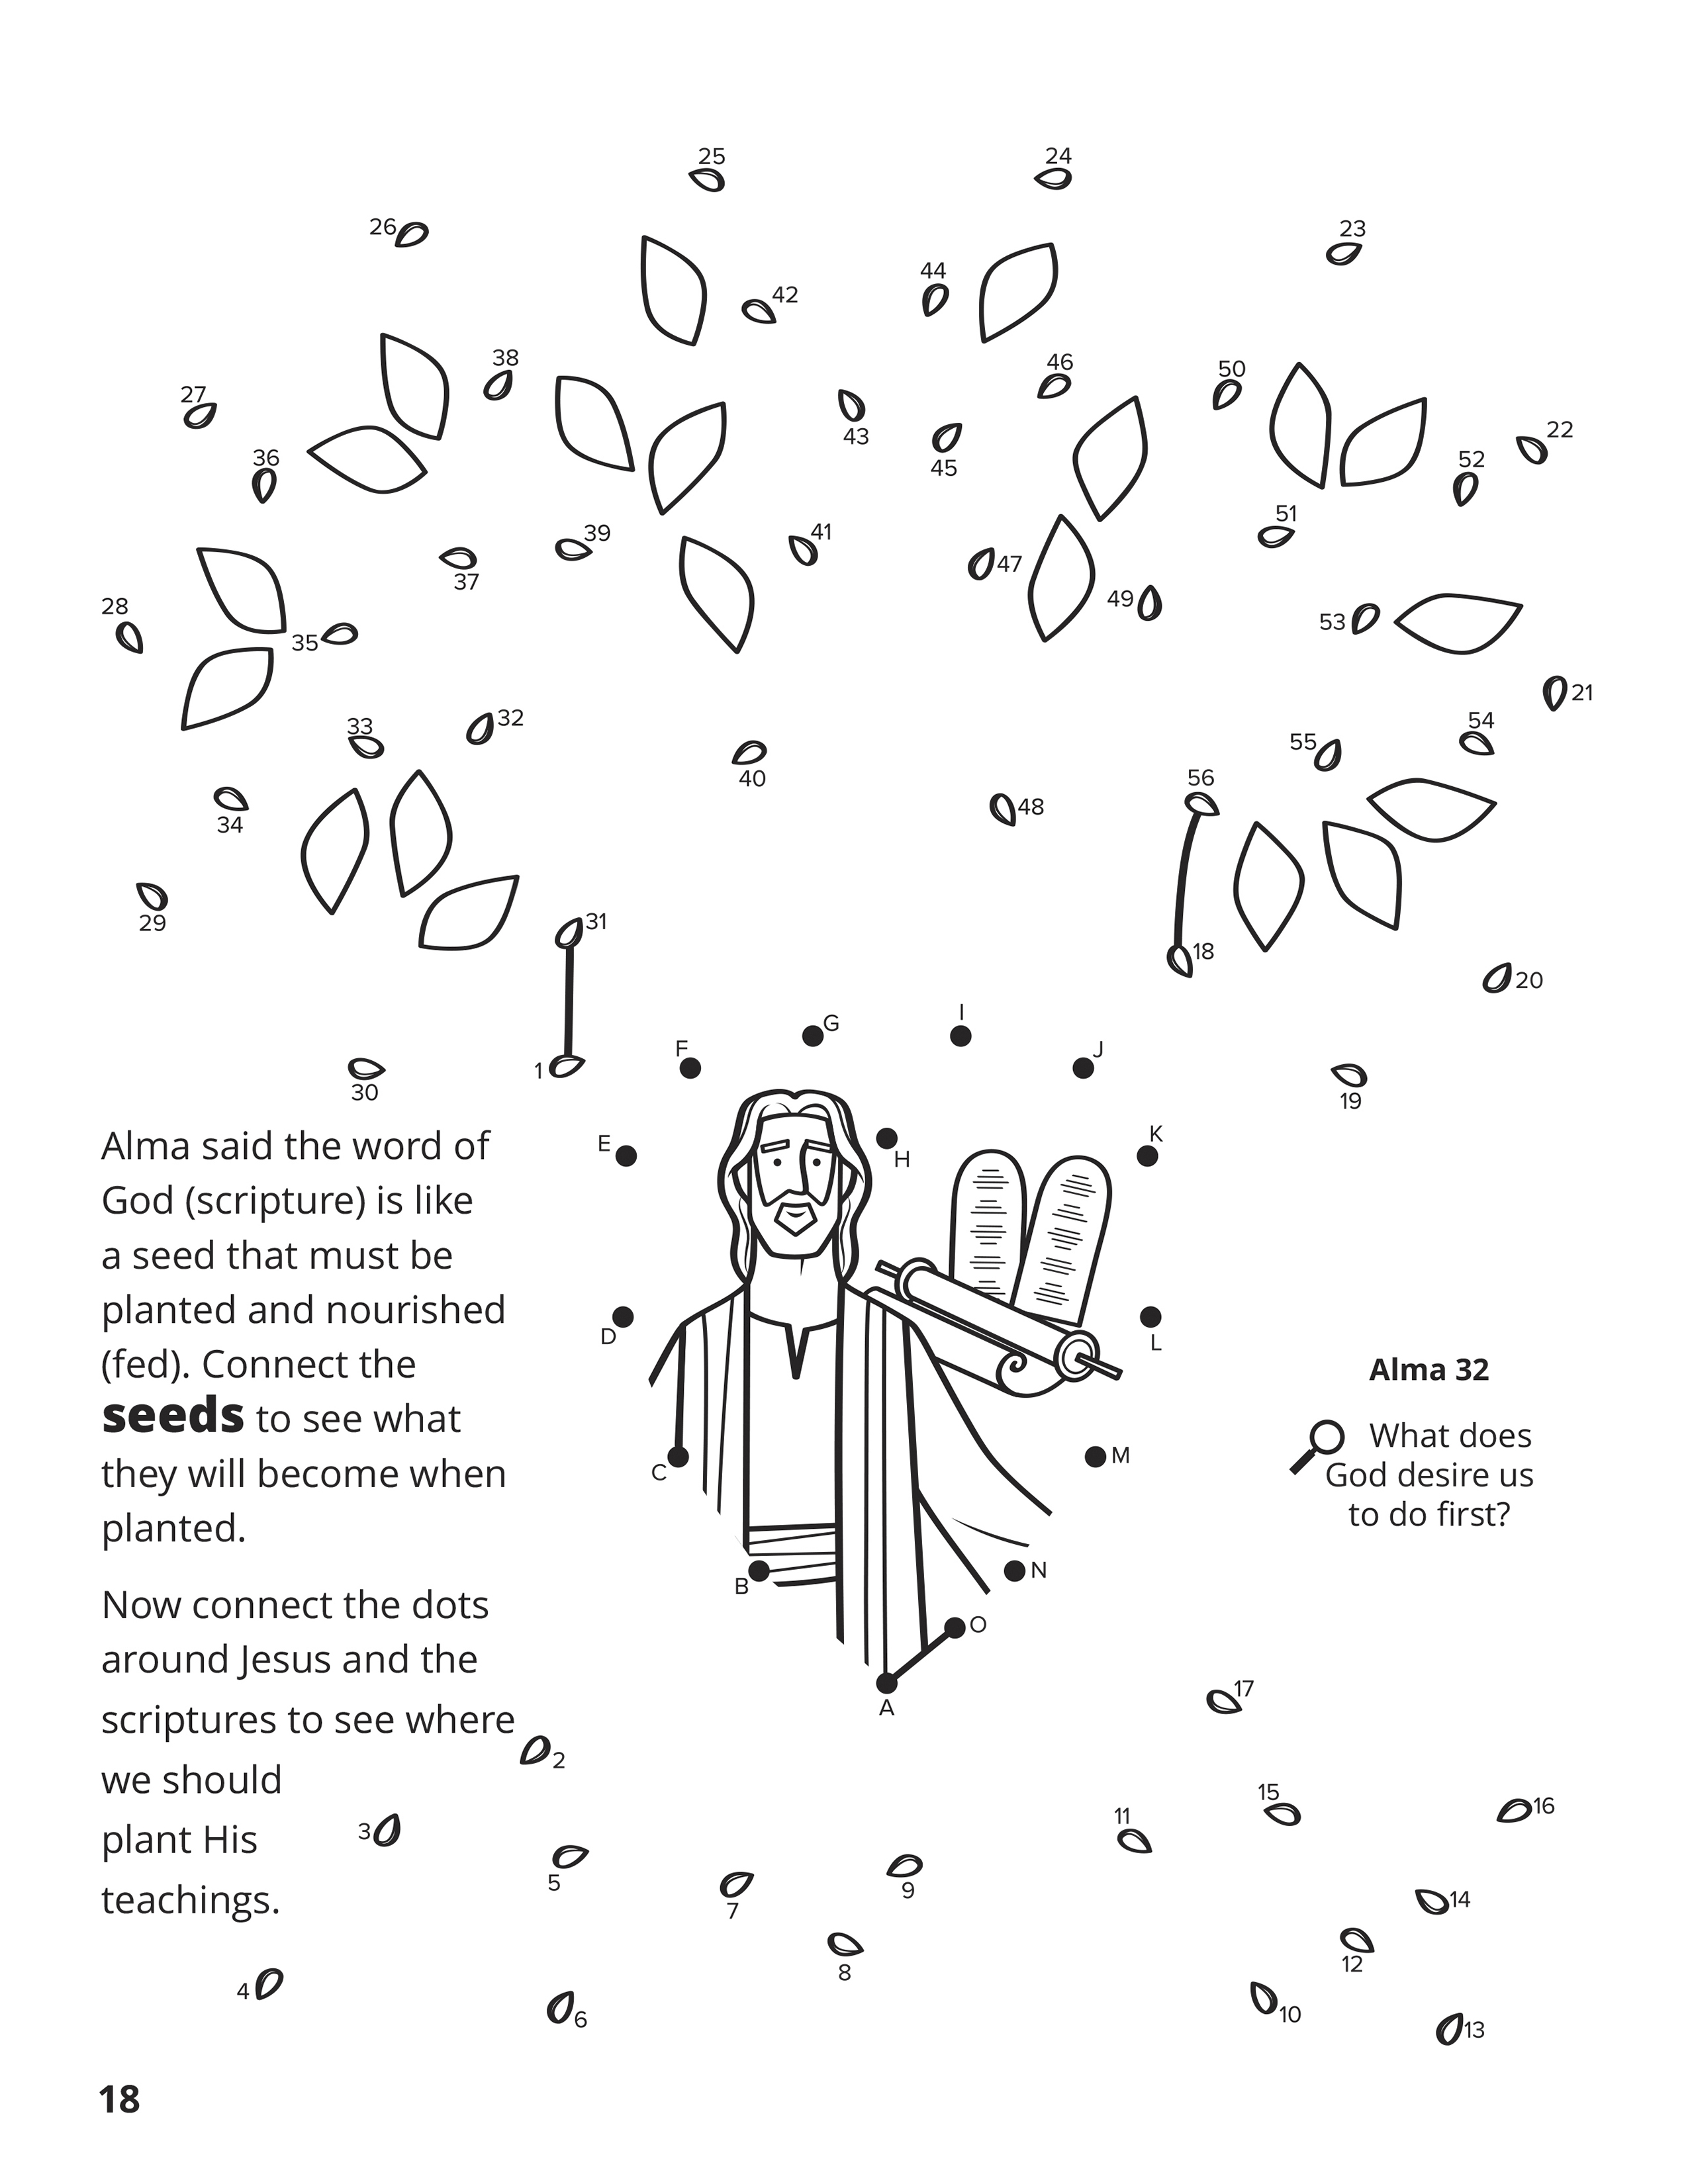 Alma said the word of God (scripture) is like a seed that must be planted and nourished (fed). Connect the seeds to see what they will become when planted. Now connect the dots around Jesus and the scriptures to see where we should plant His teachings. Location in the Scriptures: Alma 32. Search the Scriptures: What does God desire us to do first?